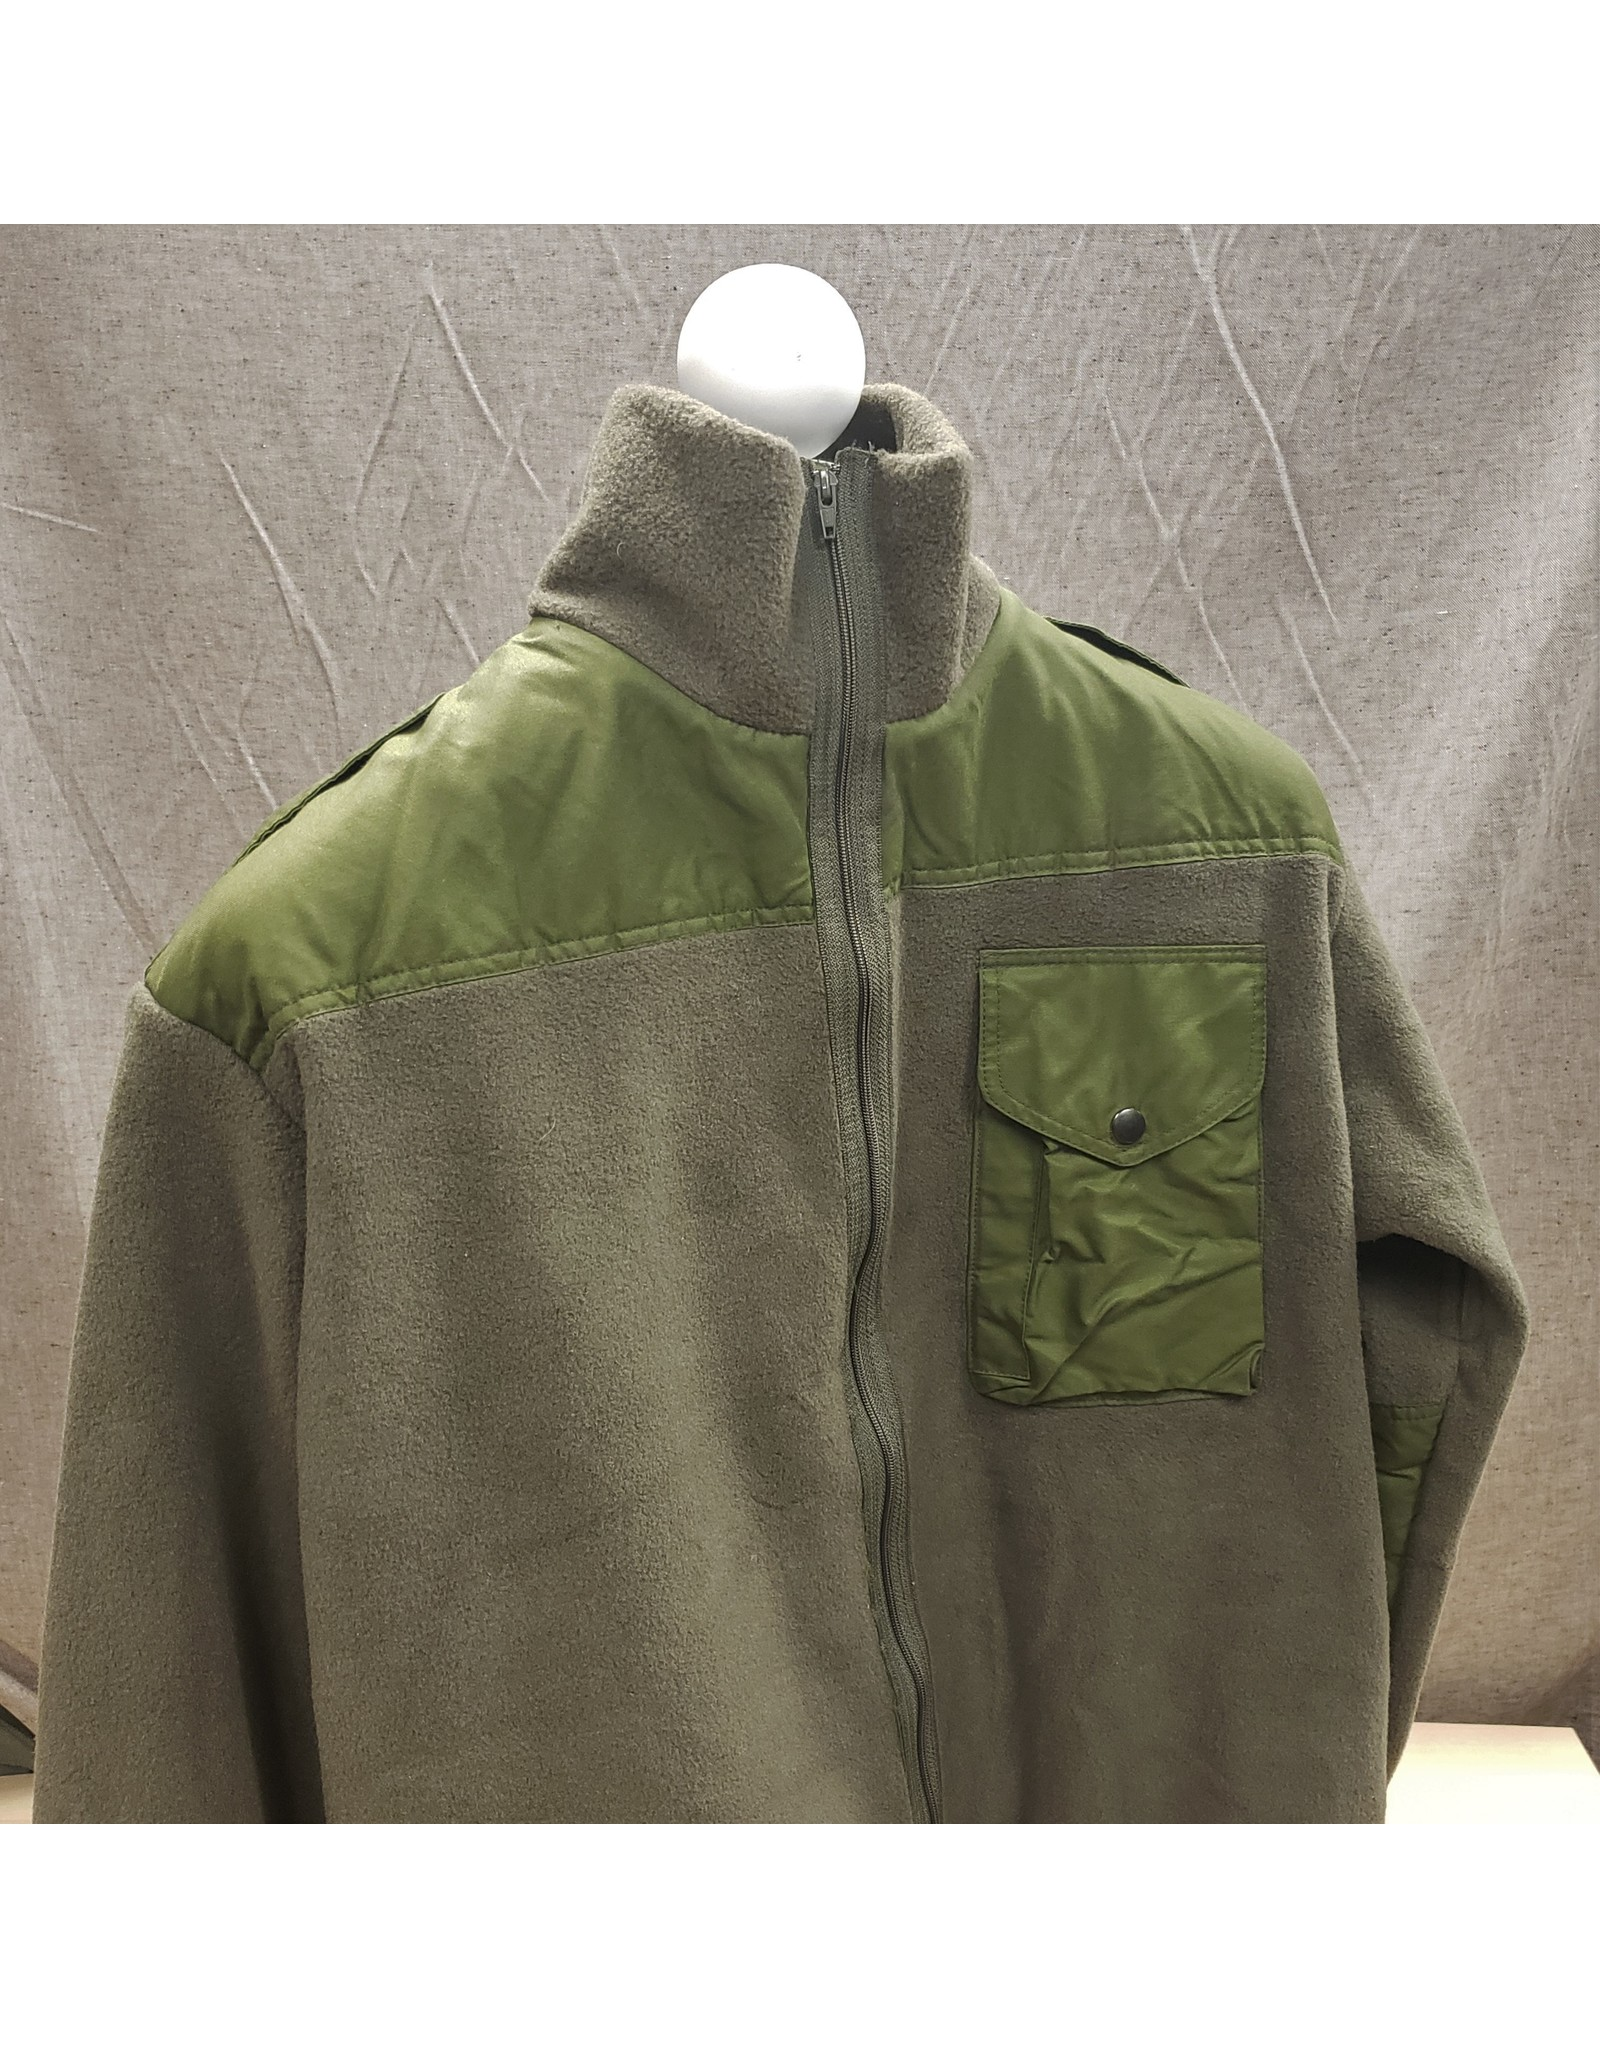 SURPLUS CANADIAN OLIVE FLEECE SHIRT